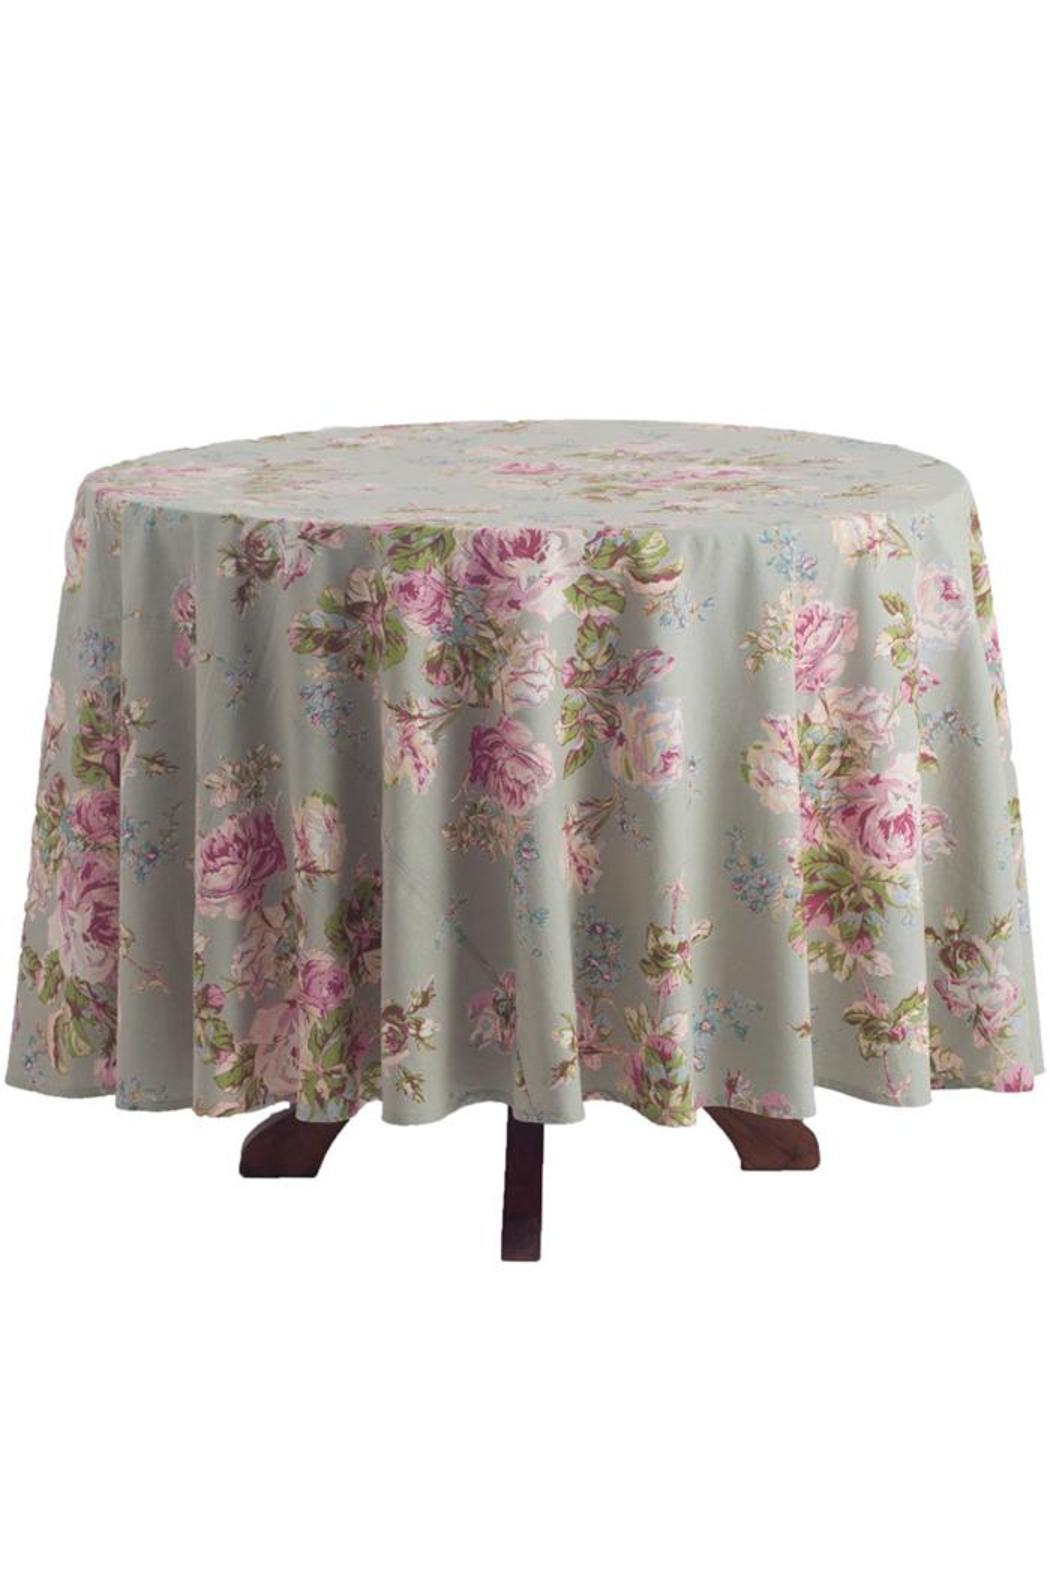 April Cornell Victorian Rose Tablecloth   Front Cropped Image